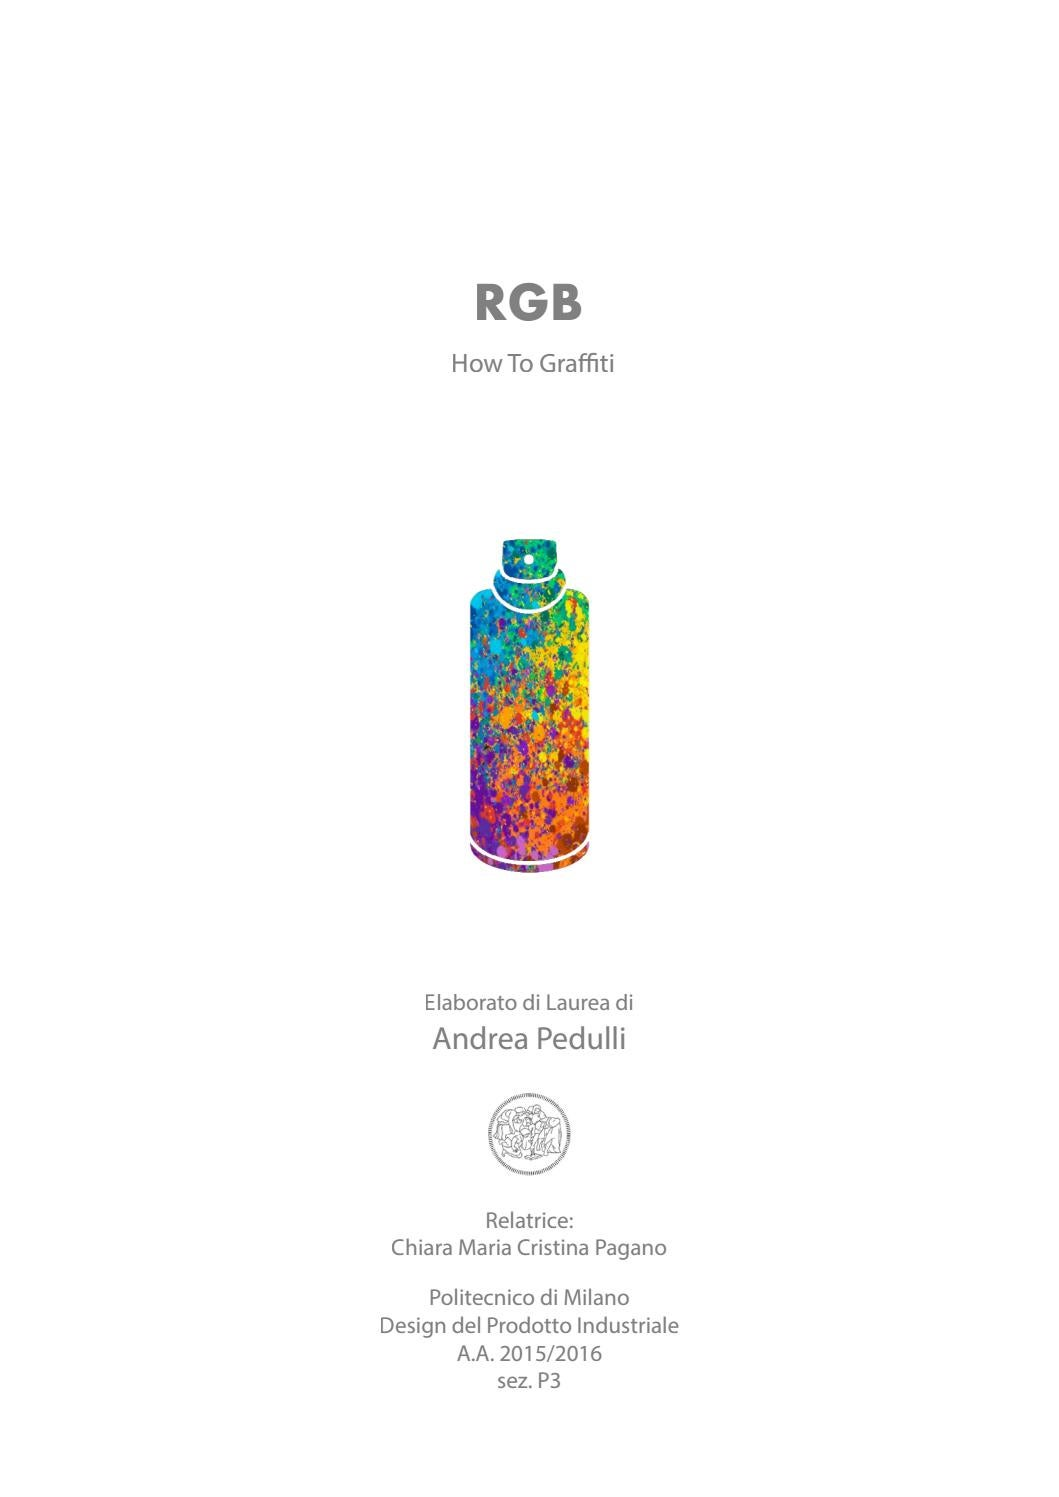 Come Tappezzare Un Muro bachelor degree thesis - rgb - how to graffiti by pedu - issuu